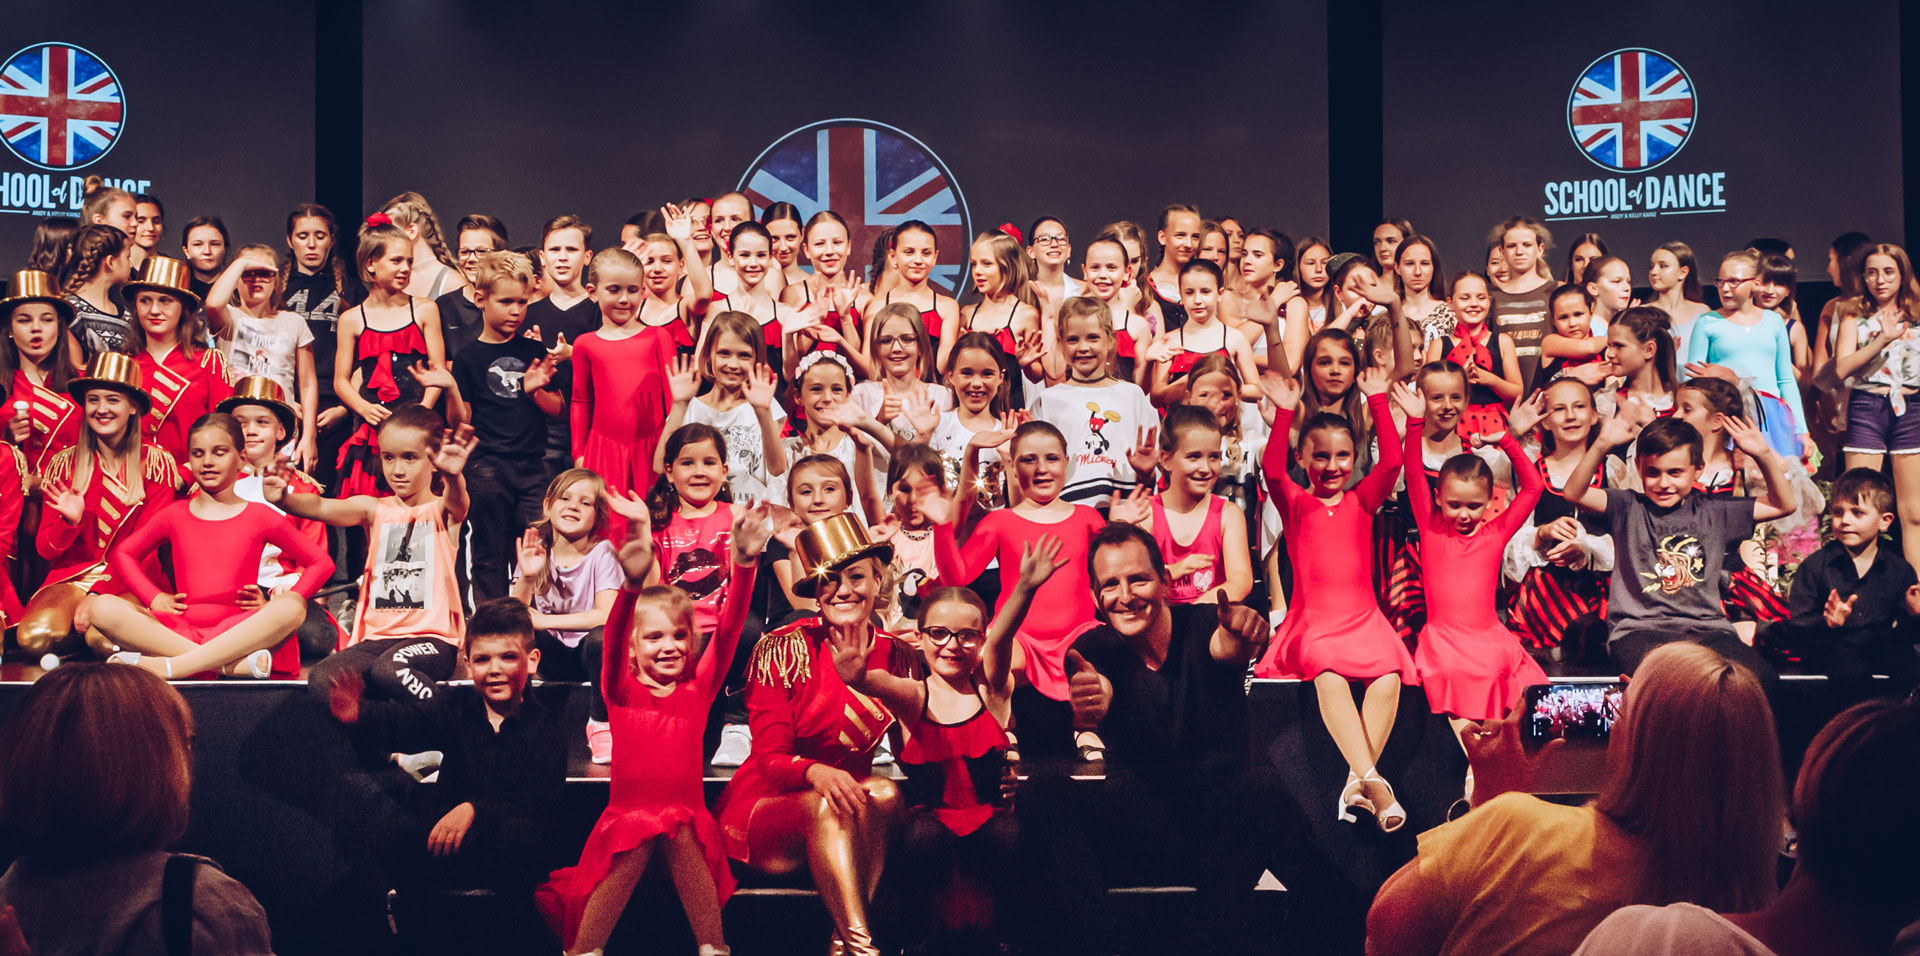 Tanzschule School of Dance